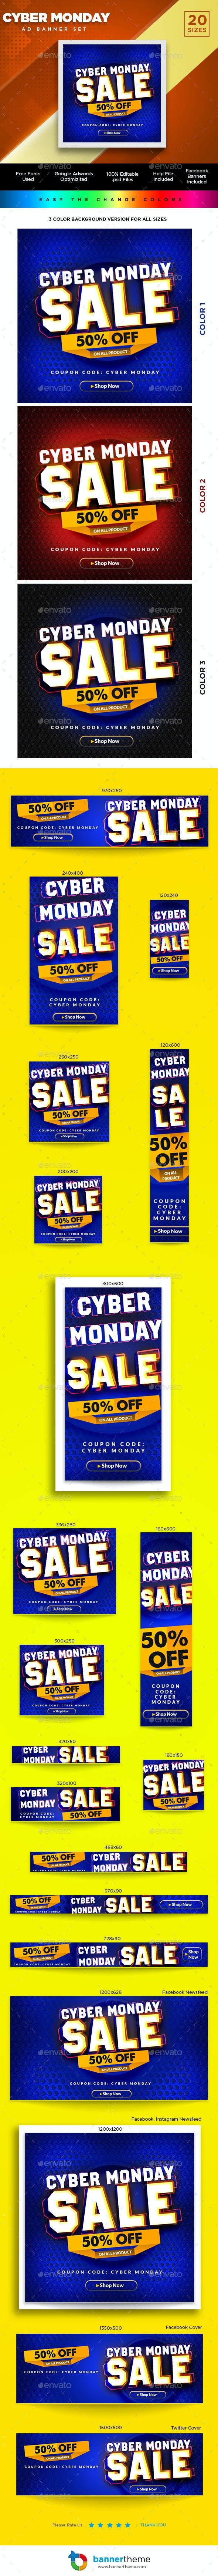 Cyber Monday Banner - Banners & Ads Web Elements